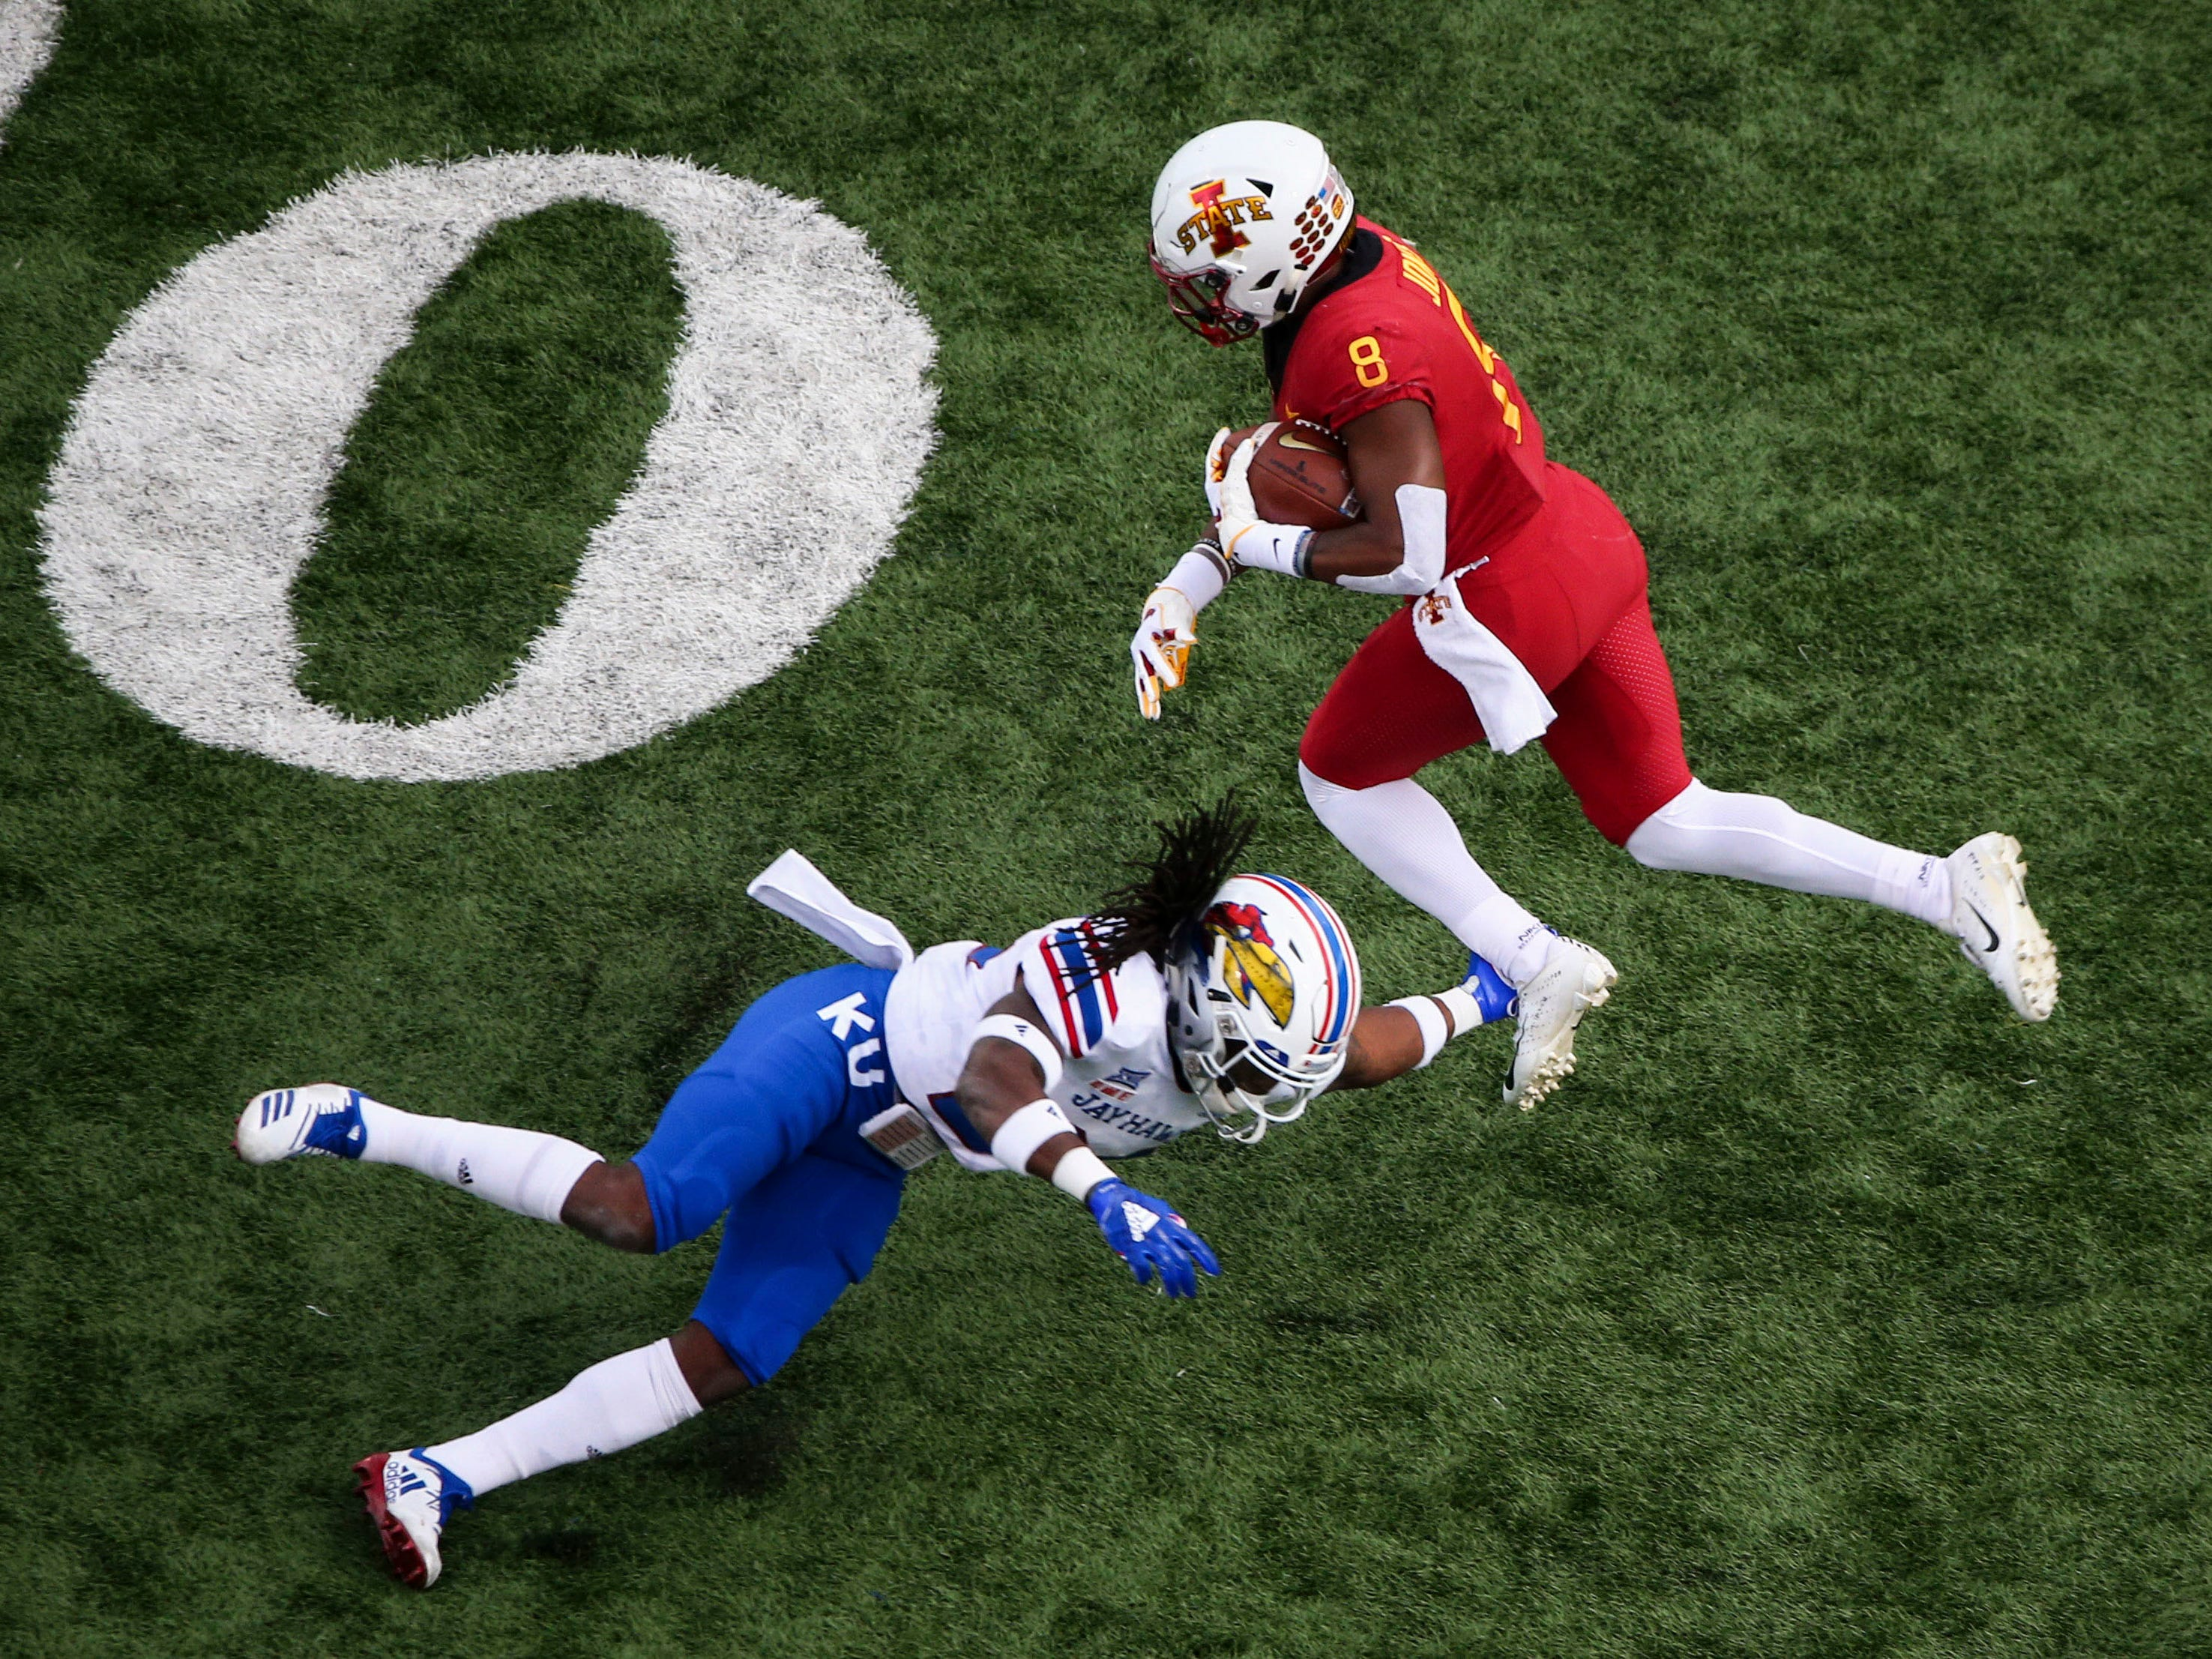 Iowa State Cyclones wide receiver Deshaunte Jones (8) tries to evade Kansas Jayhawks cornerback Ricky Thomas (24) in the second half at Memorial Stadium.